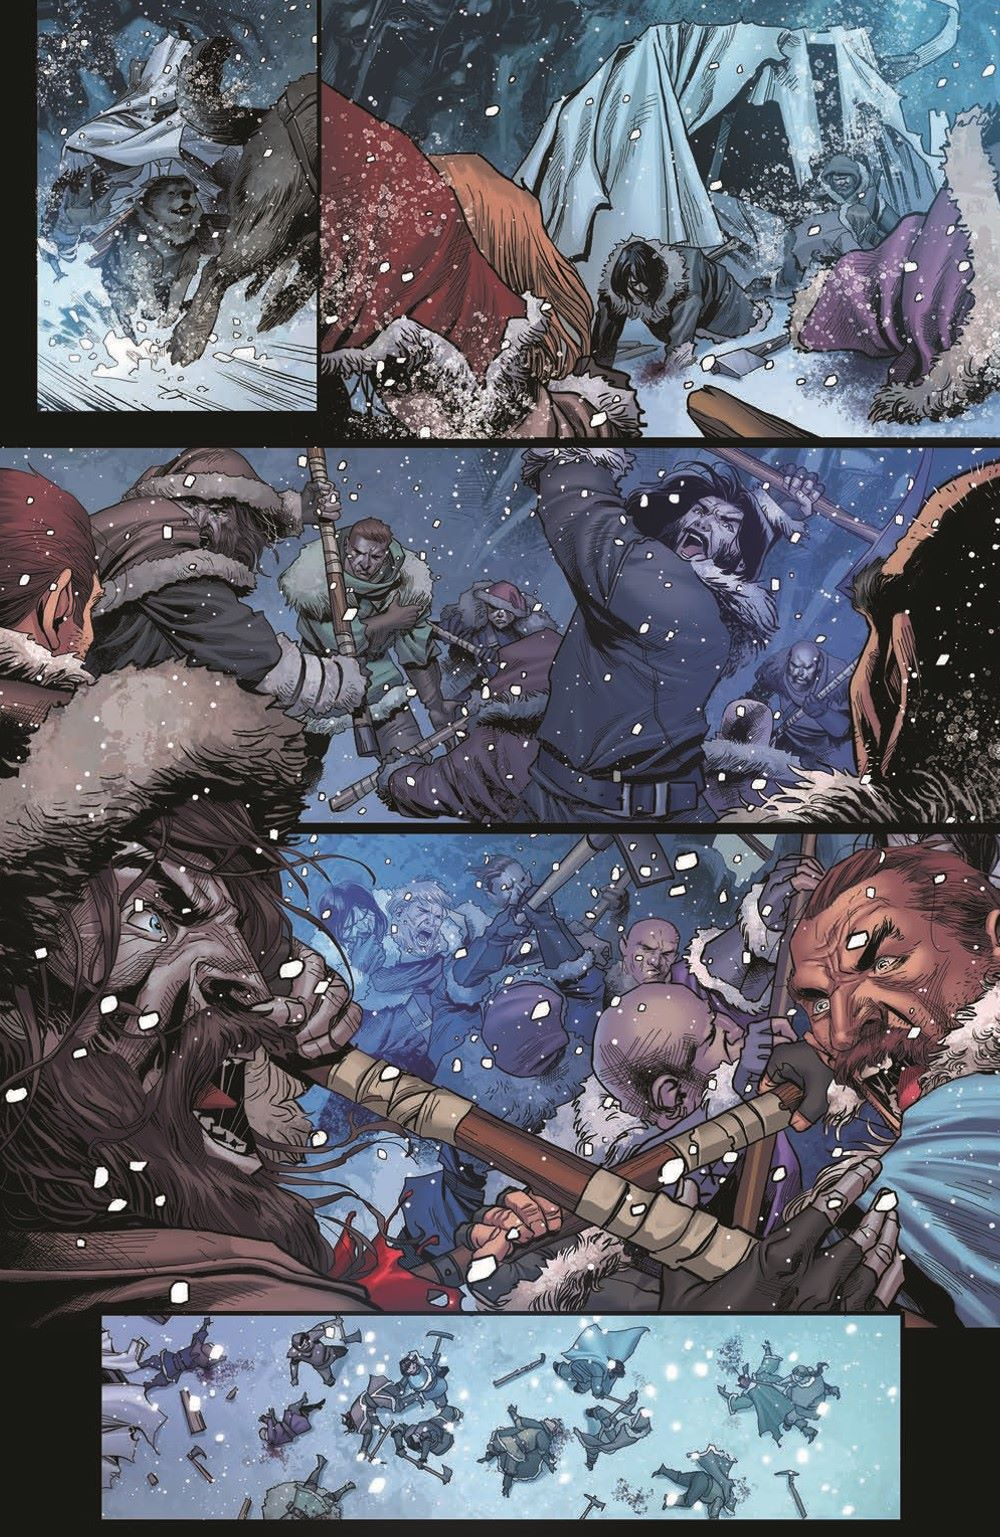 DD_ATSOTW01-pr-5 ComicList Previews: DUNGEONS AND DRAGONS AT THE SPINE OF THE WORLD #1 (OF 4)